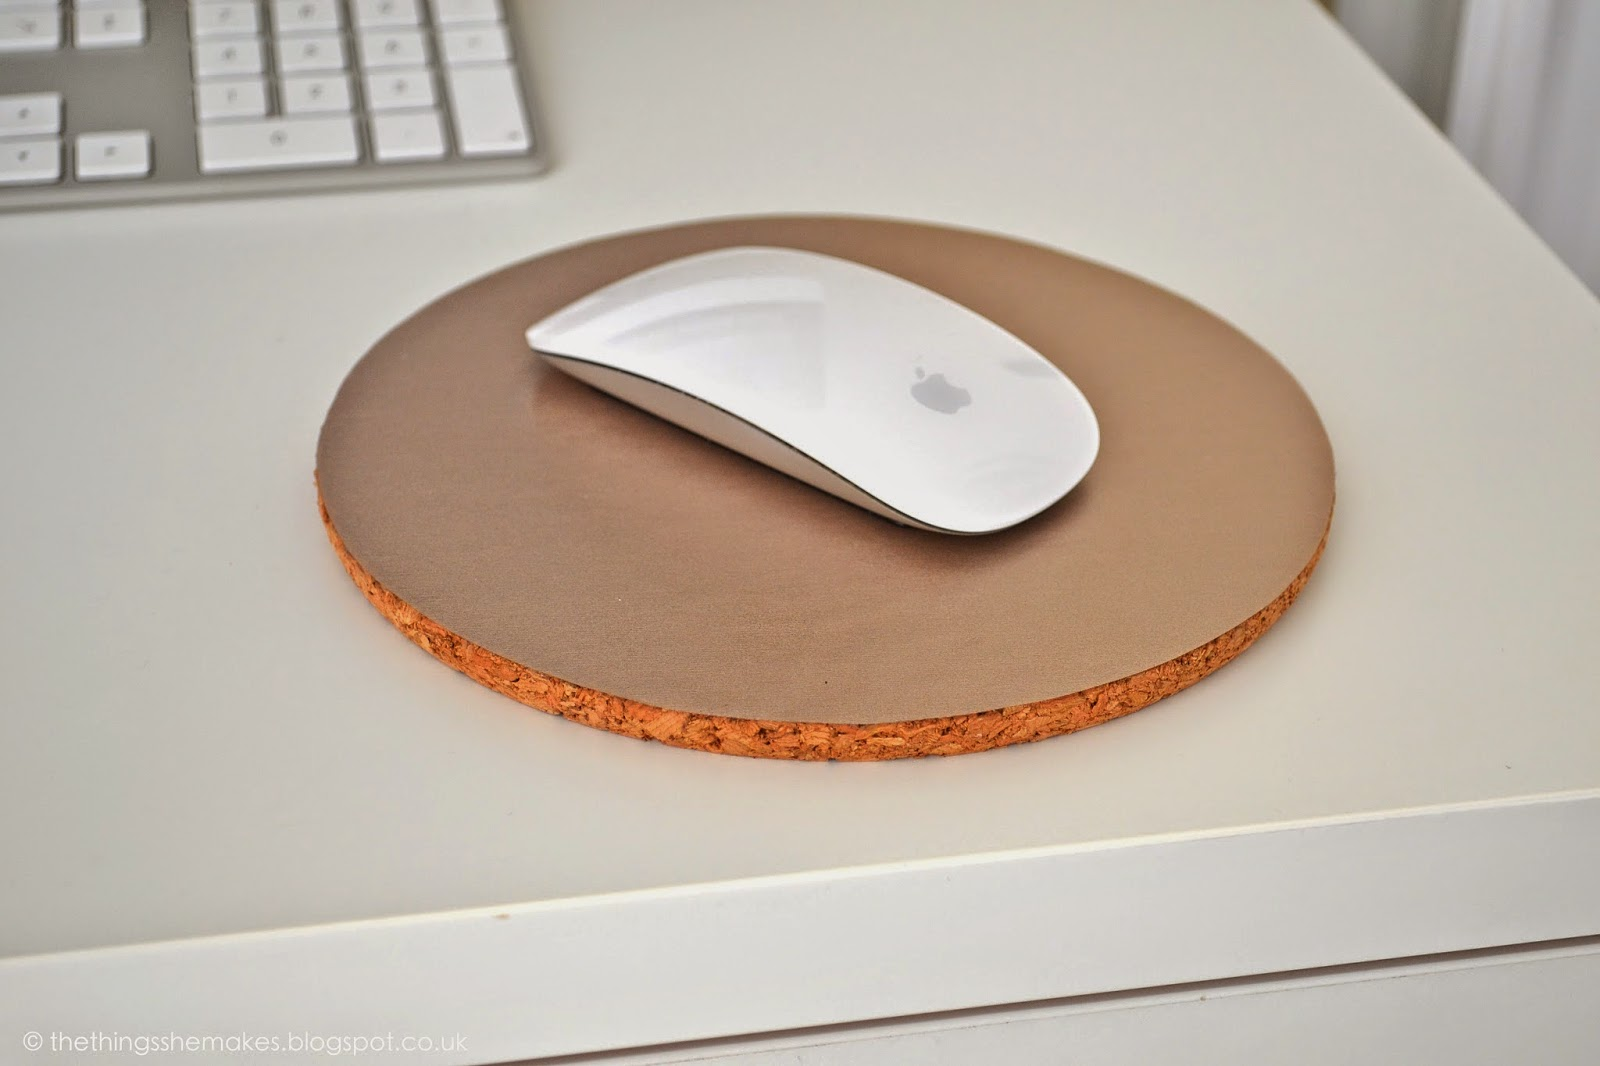 Cosmopolitan Make A Nouse Pad Mouse Pads You Can Craft Yourself Using Materials Homemade Mouse Pad Wrist Rest Easy Homemade Mouse Pad custom Homemade Mouse Pad